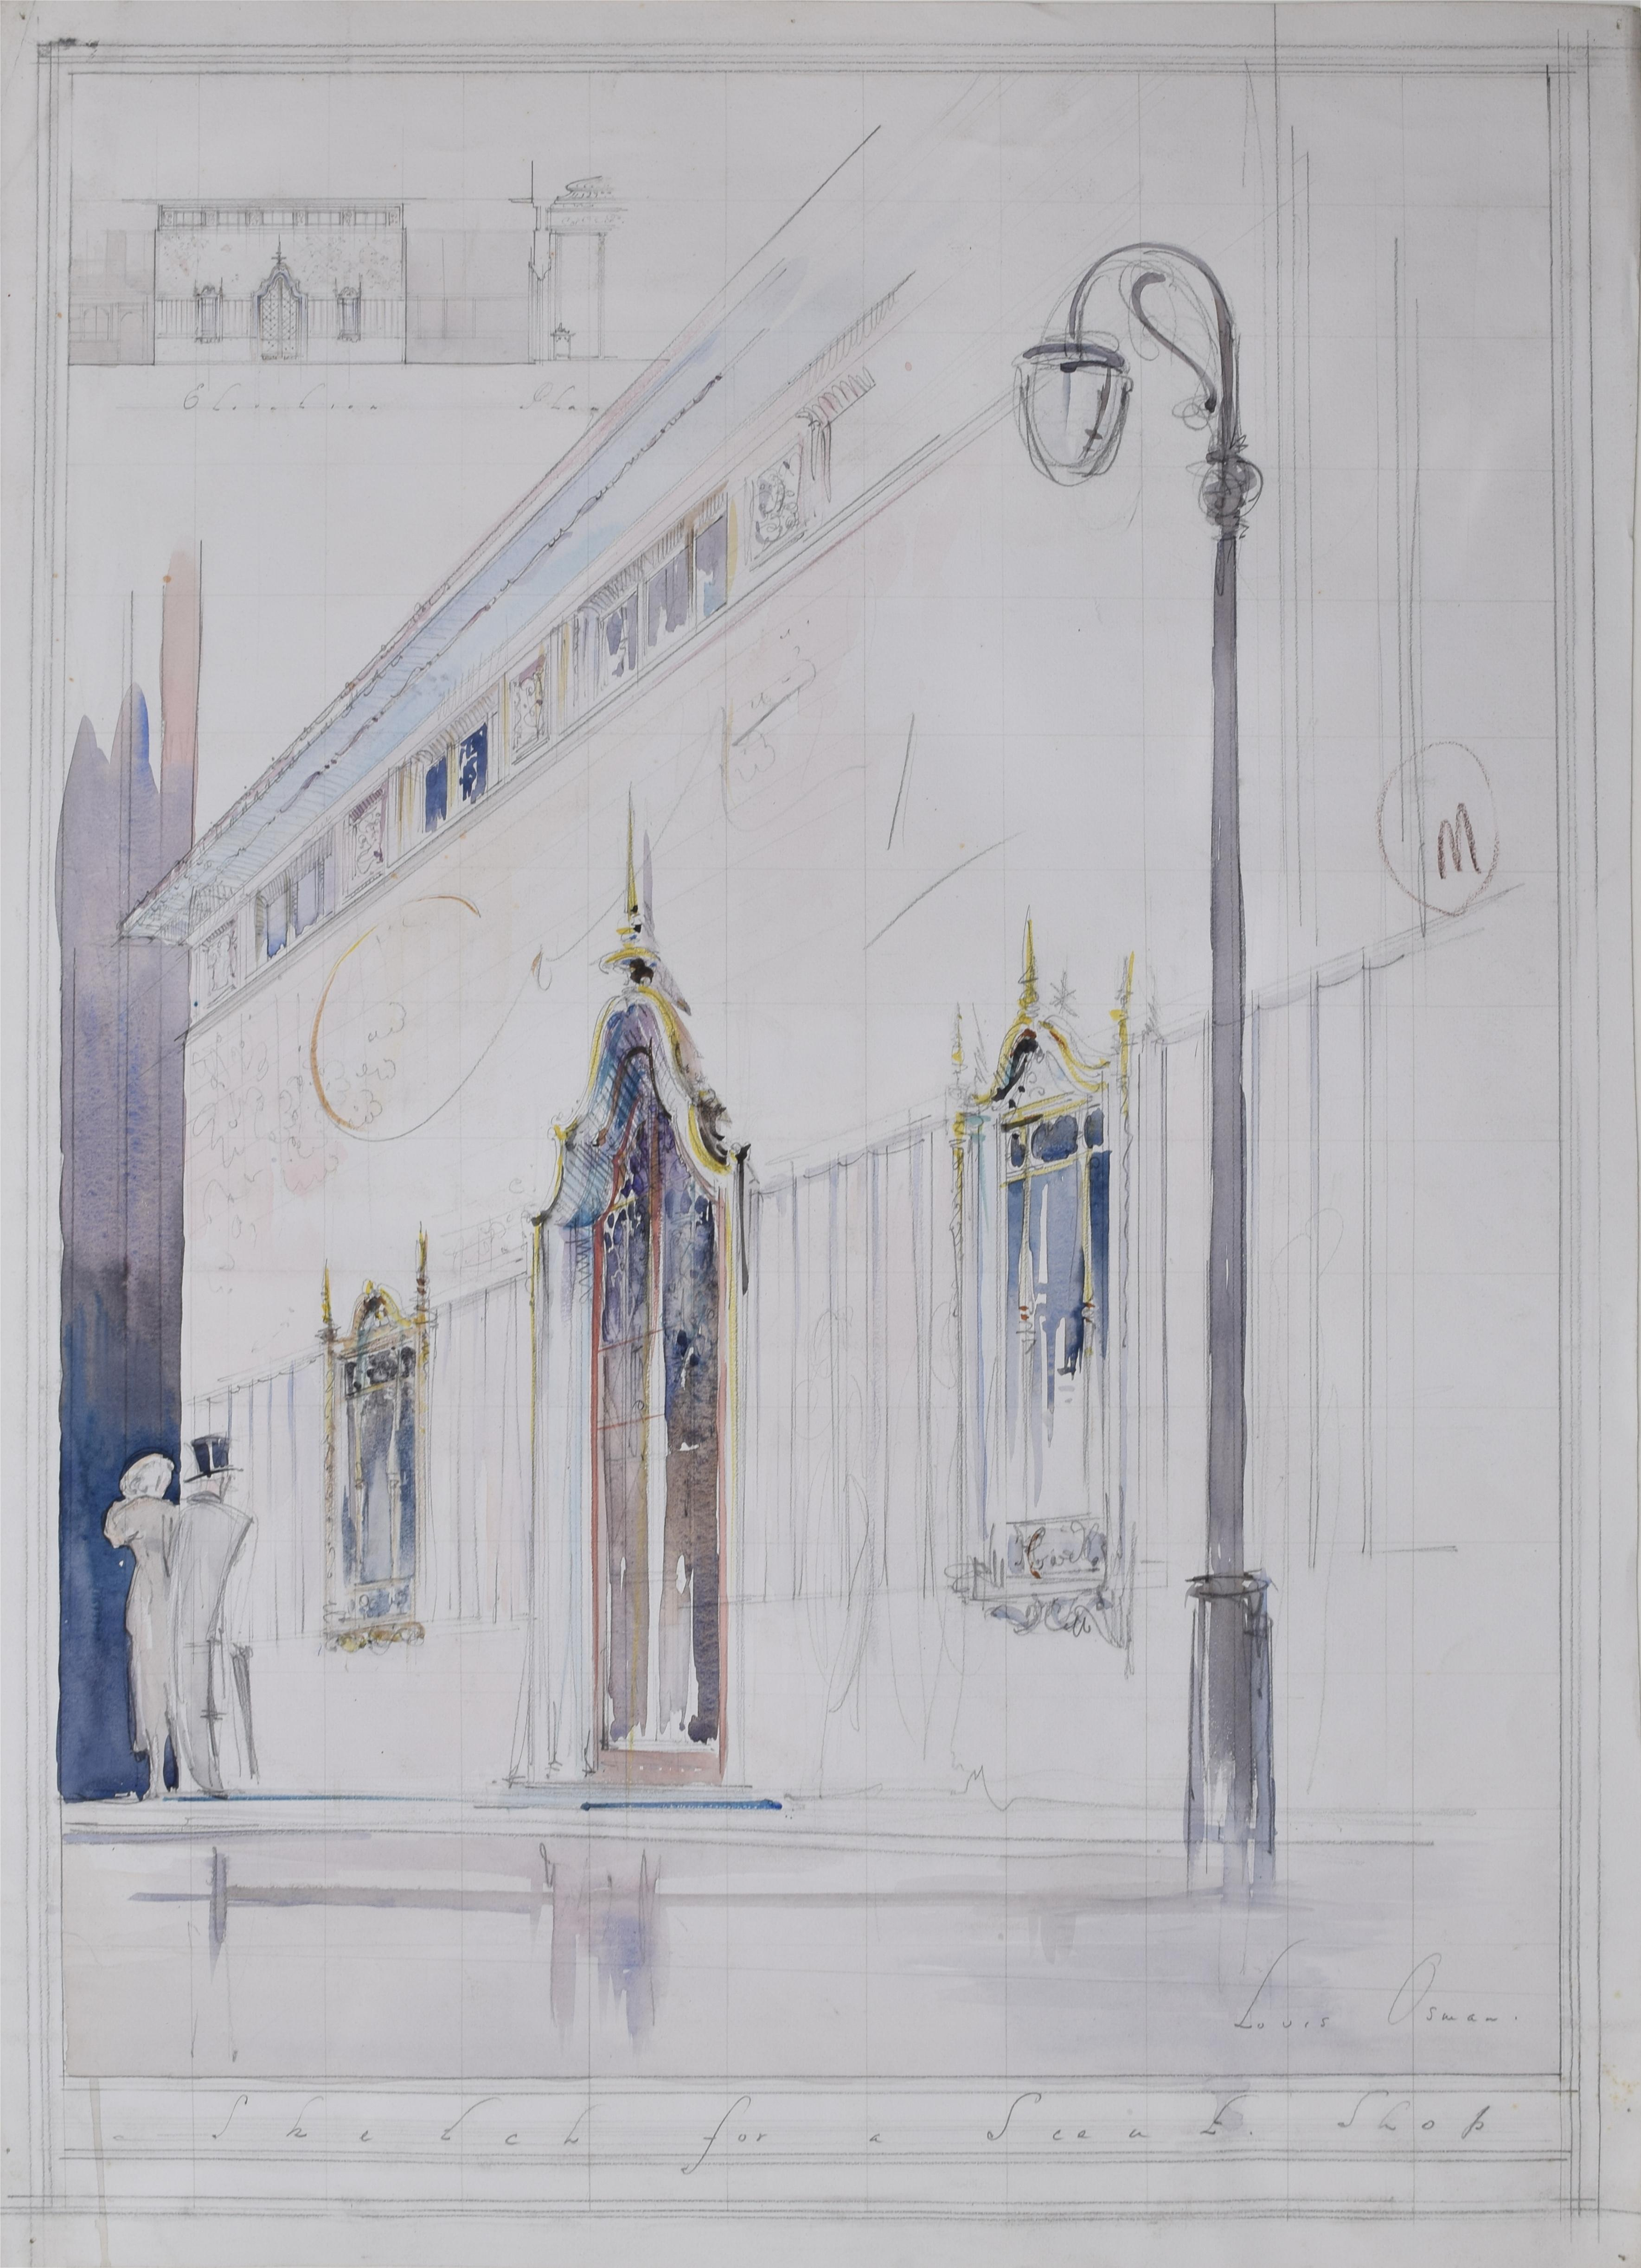 Louis Osman Architectural Drawing Design for a Shop Front with Elegant Figures